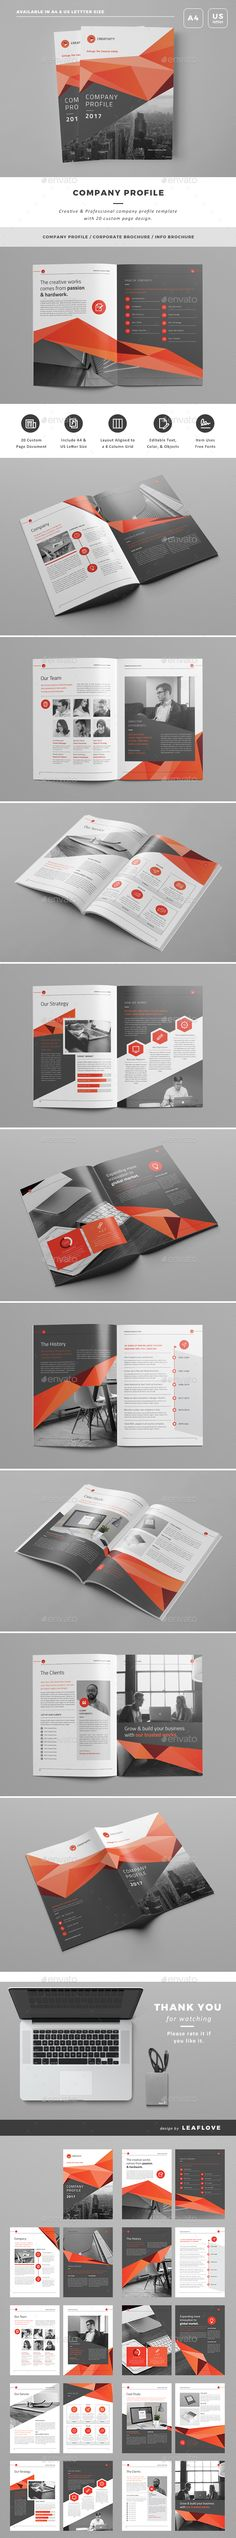 Company Profile Brochure 2017 Company Profile Corporate Brochure